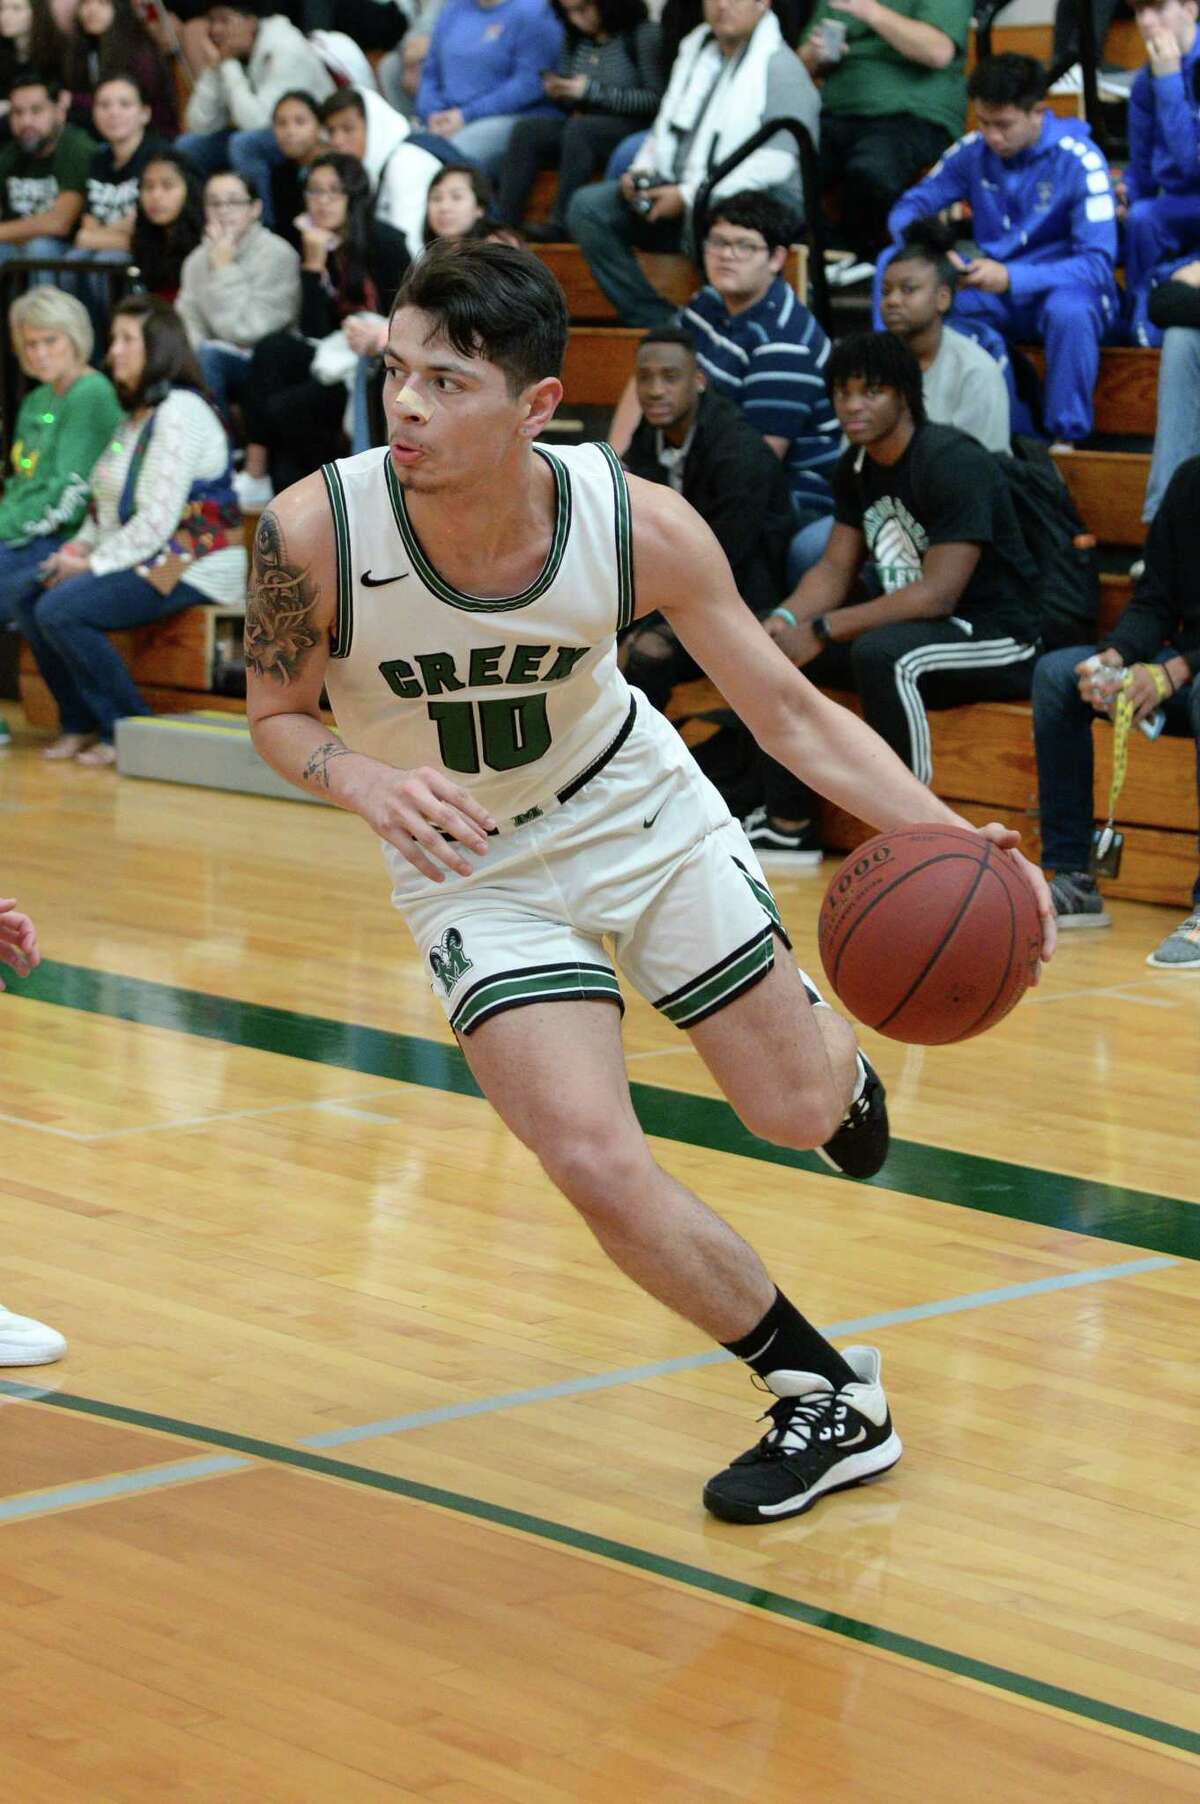 David Chavez (10) of Mayde Creek drives toward the paint during pool play of the Katy Classic Basketball Tournament between the Mayde Creek Rams and the Tomball Cougars on Thursday, December 5, 2019 at Mayde Creek HS, Houston, TX.